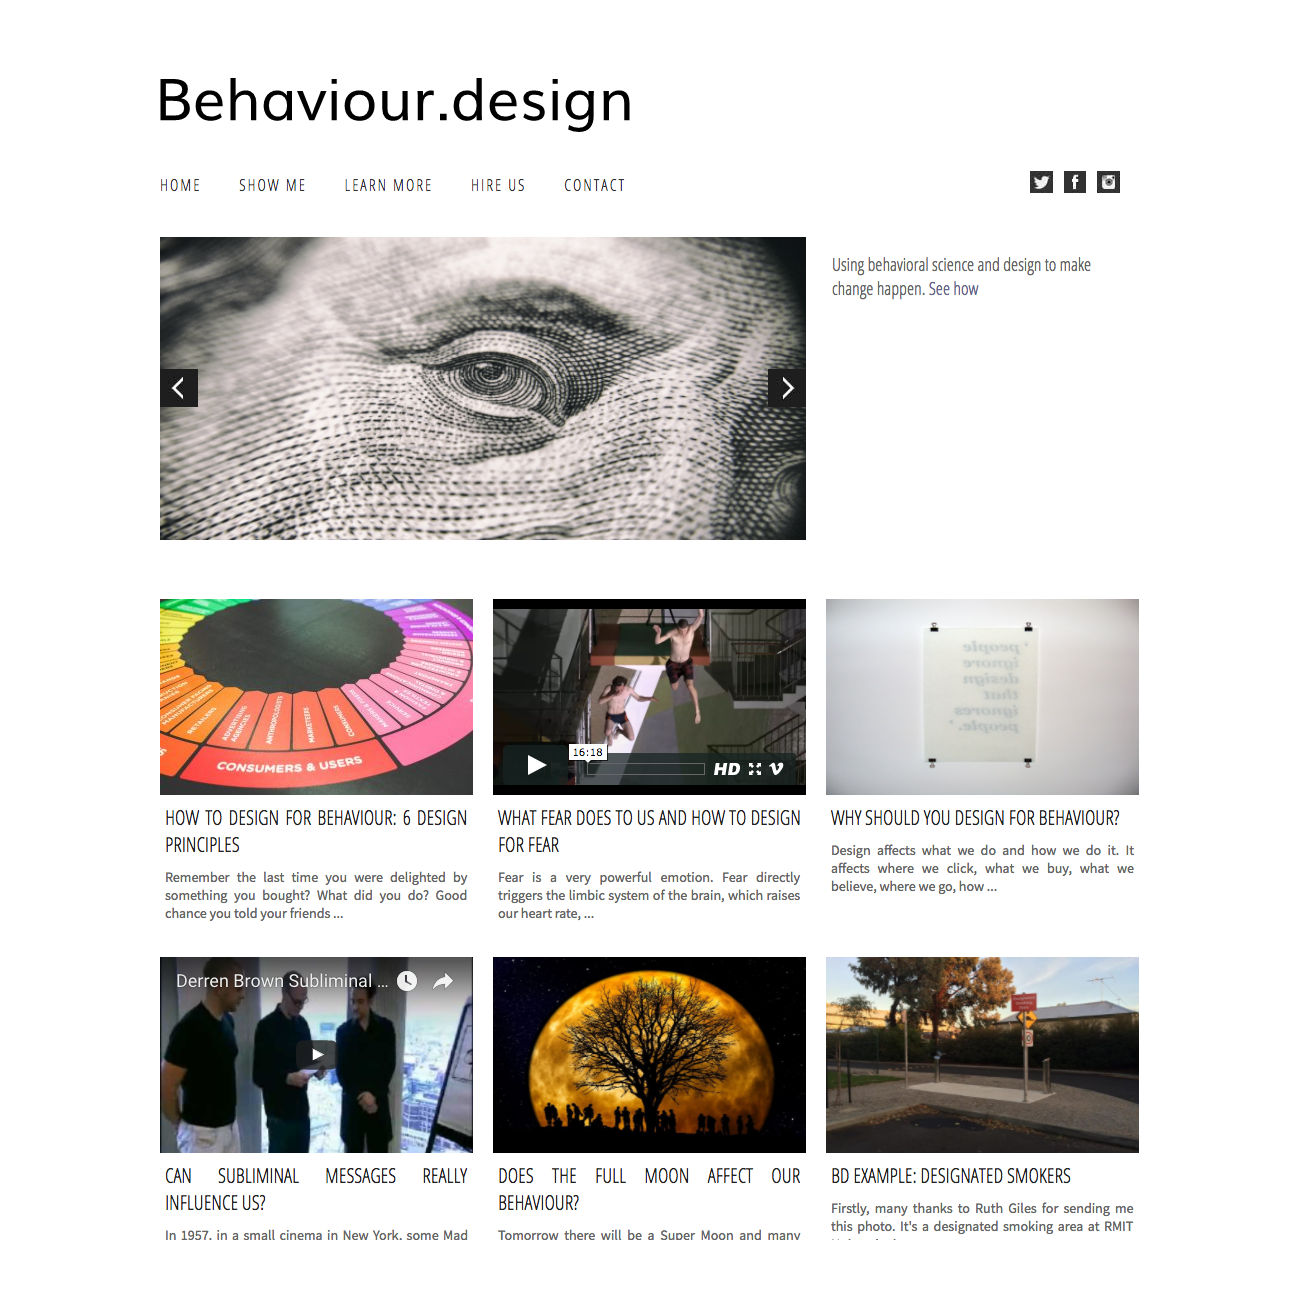 behaviour.design